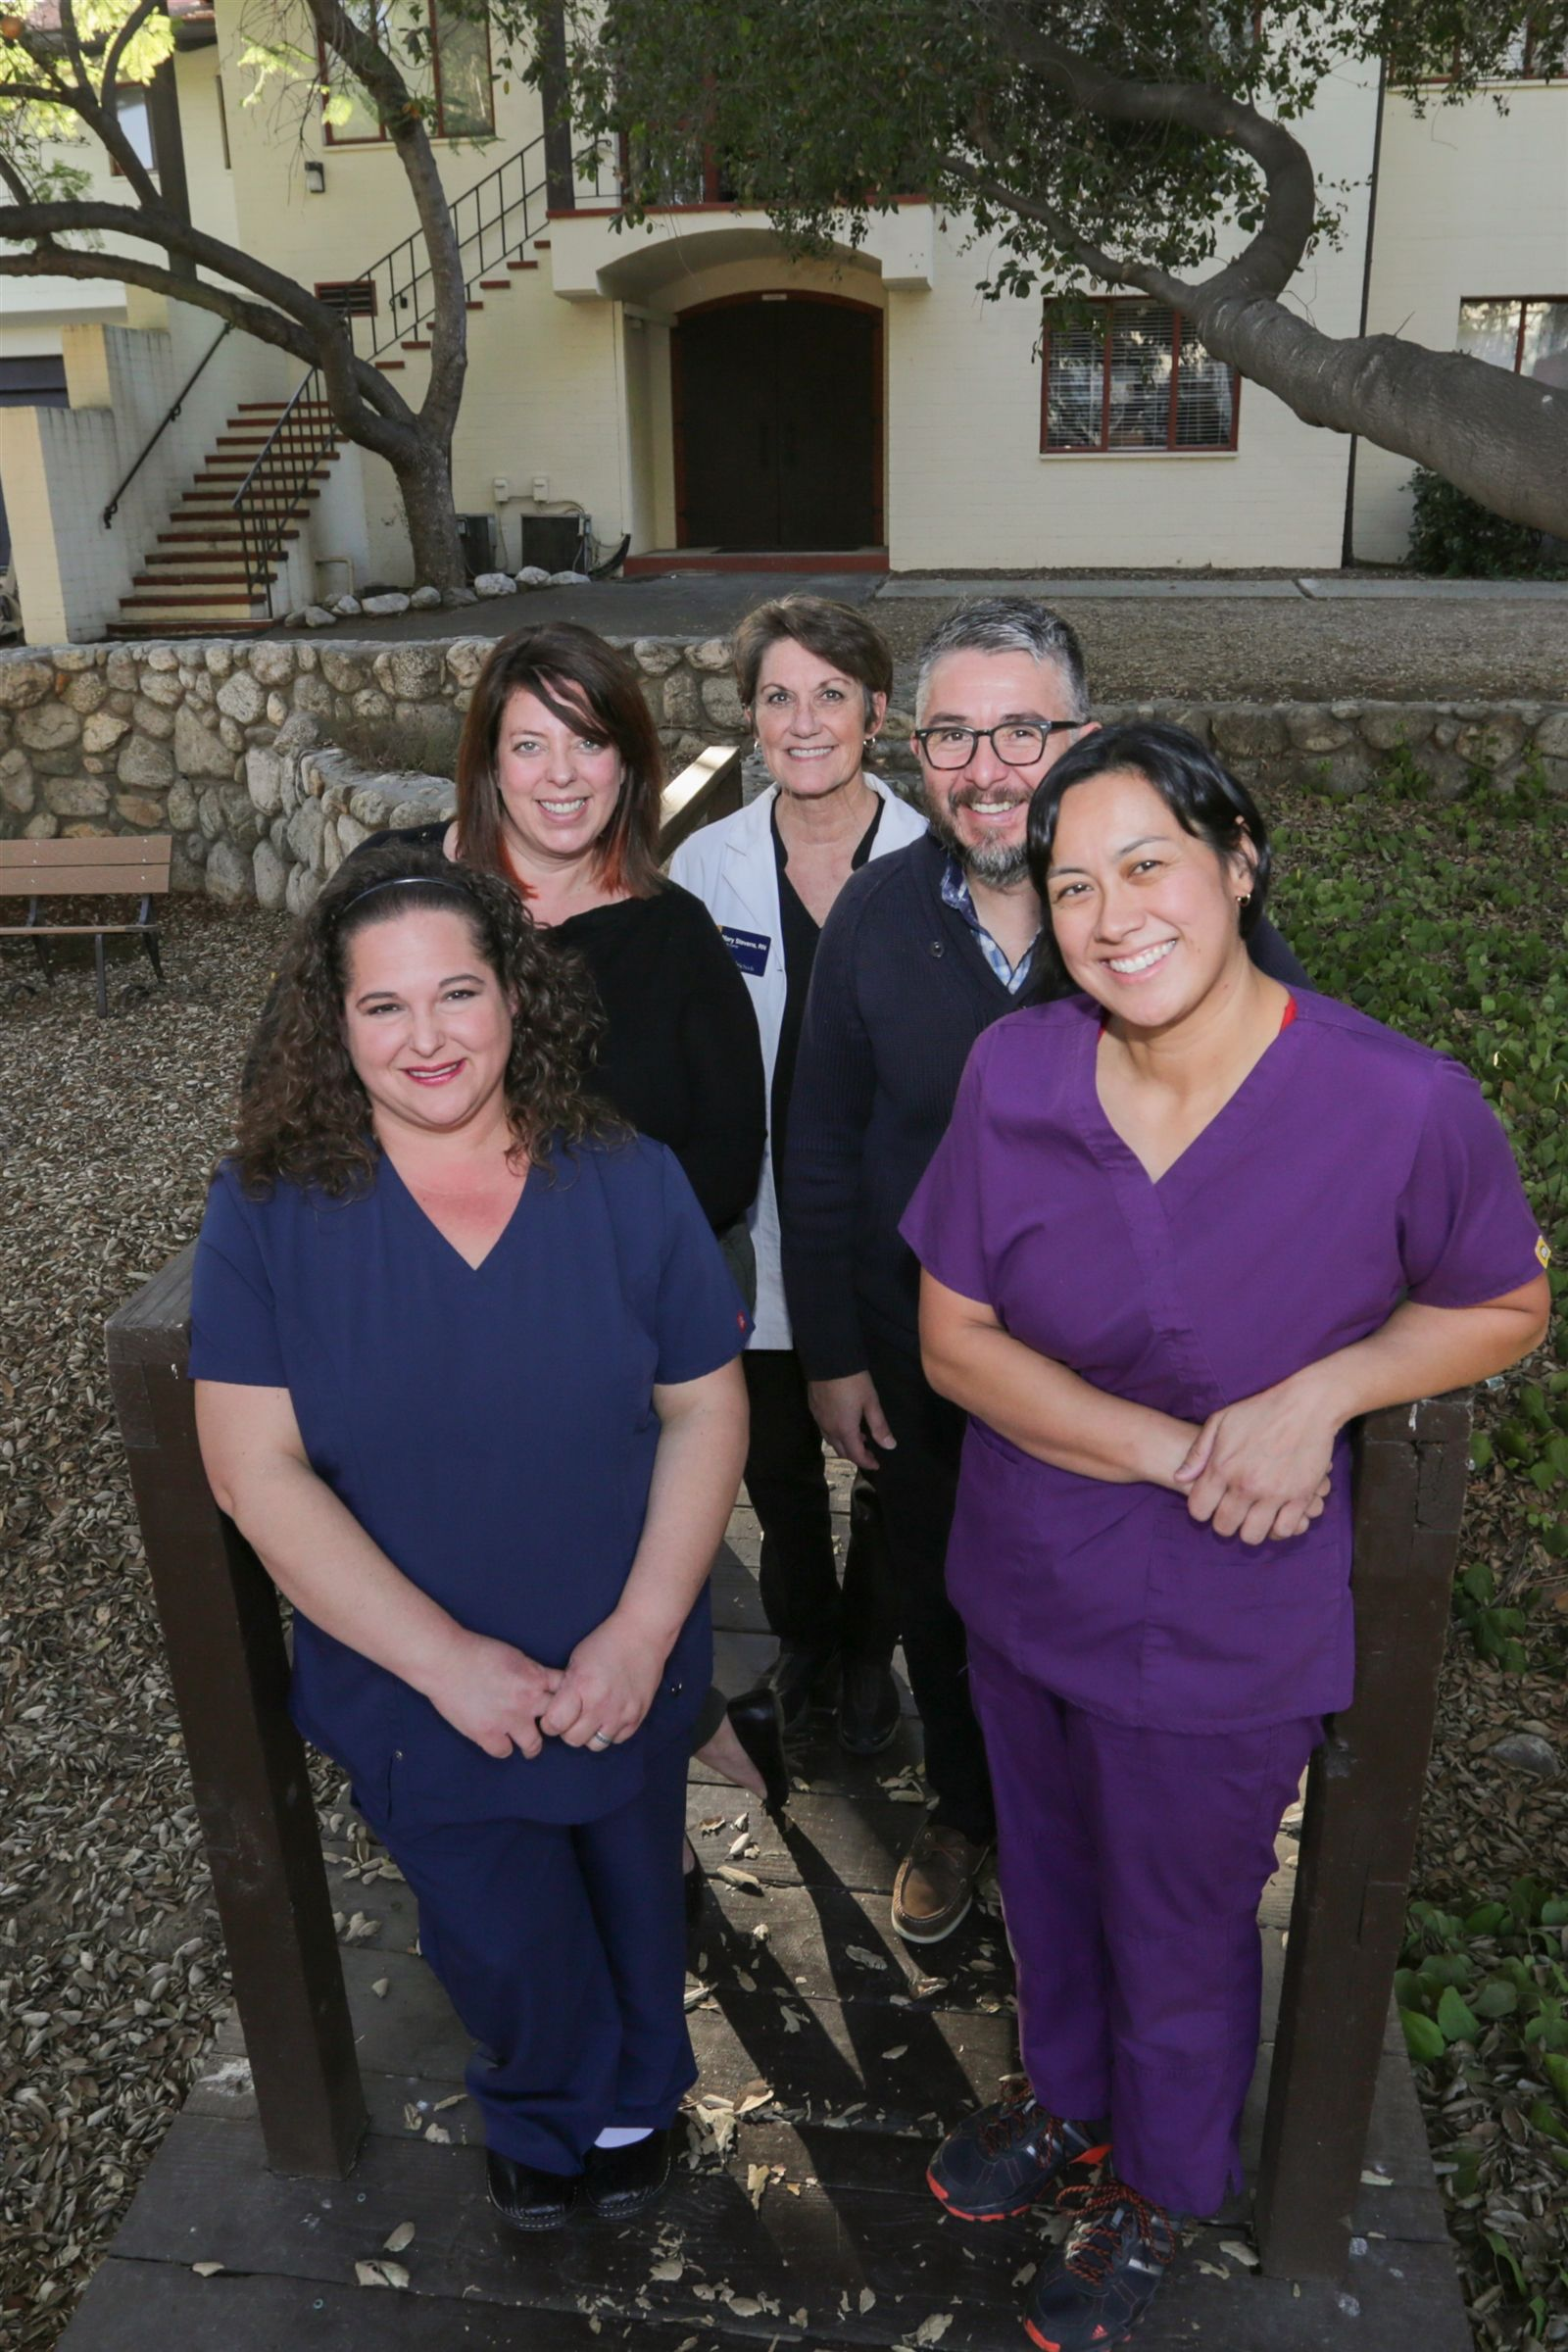 Health Center Staff (l-r): Amy Lopez RN, Melanie Bauman Director of Counseling, Mary Stevens RN, Daniel Rios Counselor, Stephanie Baron PA-C